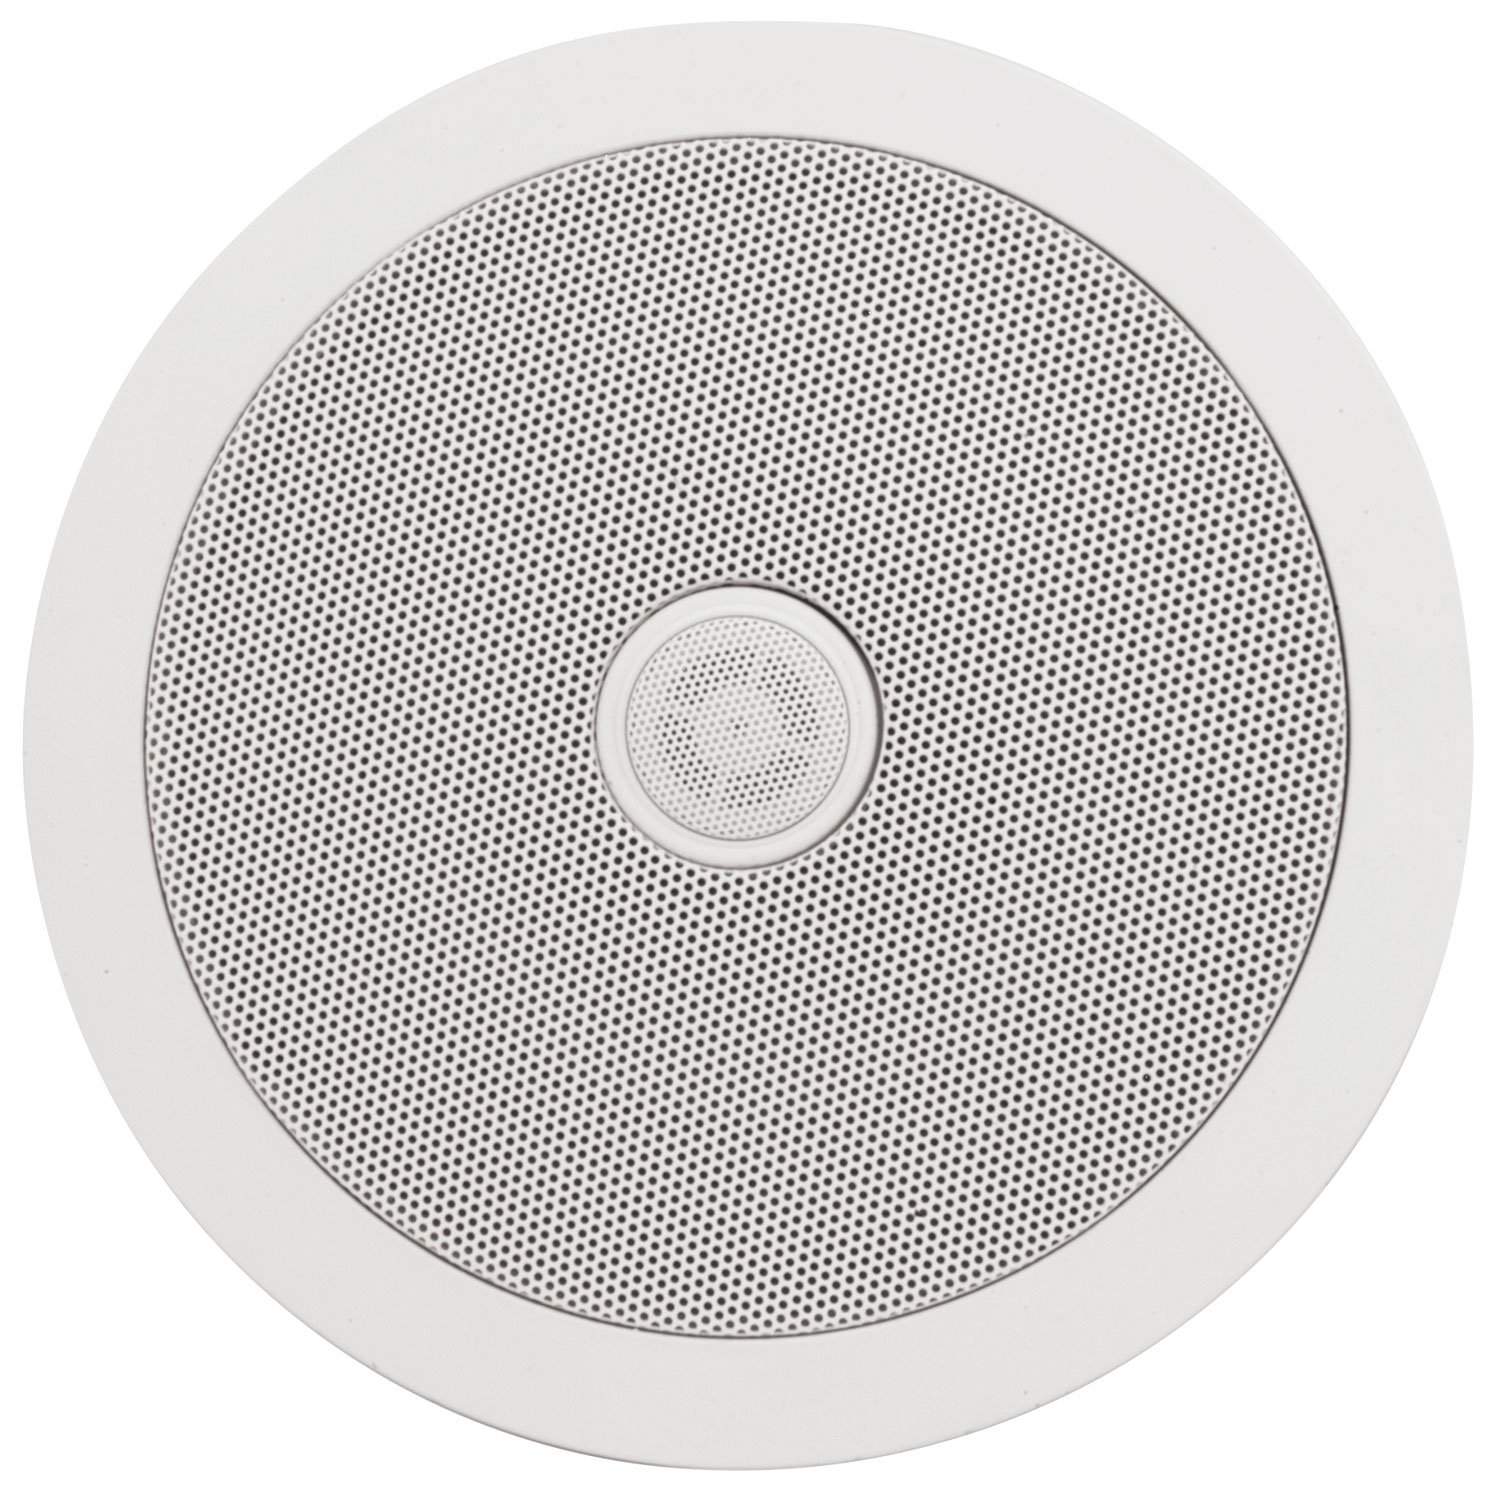 "Adastra C6D 100W 6.5"" High Quality Ceiling Speaker with Directional Tweeter 952.534UK"